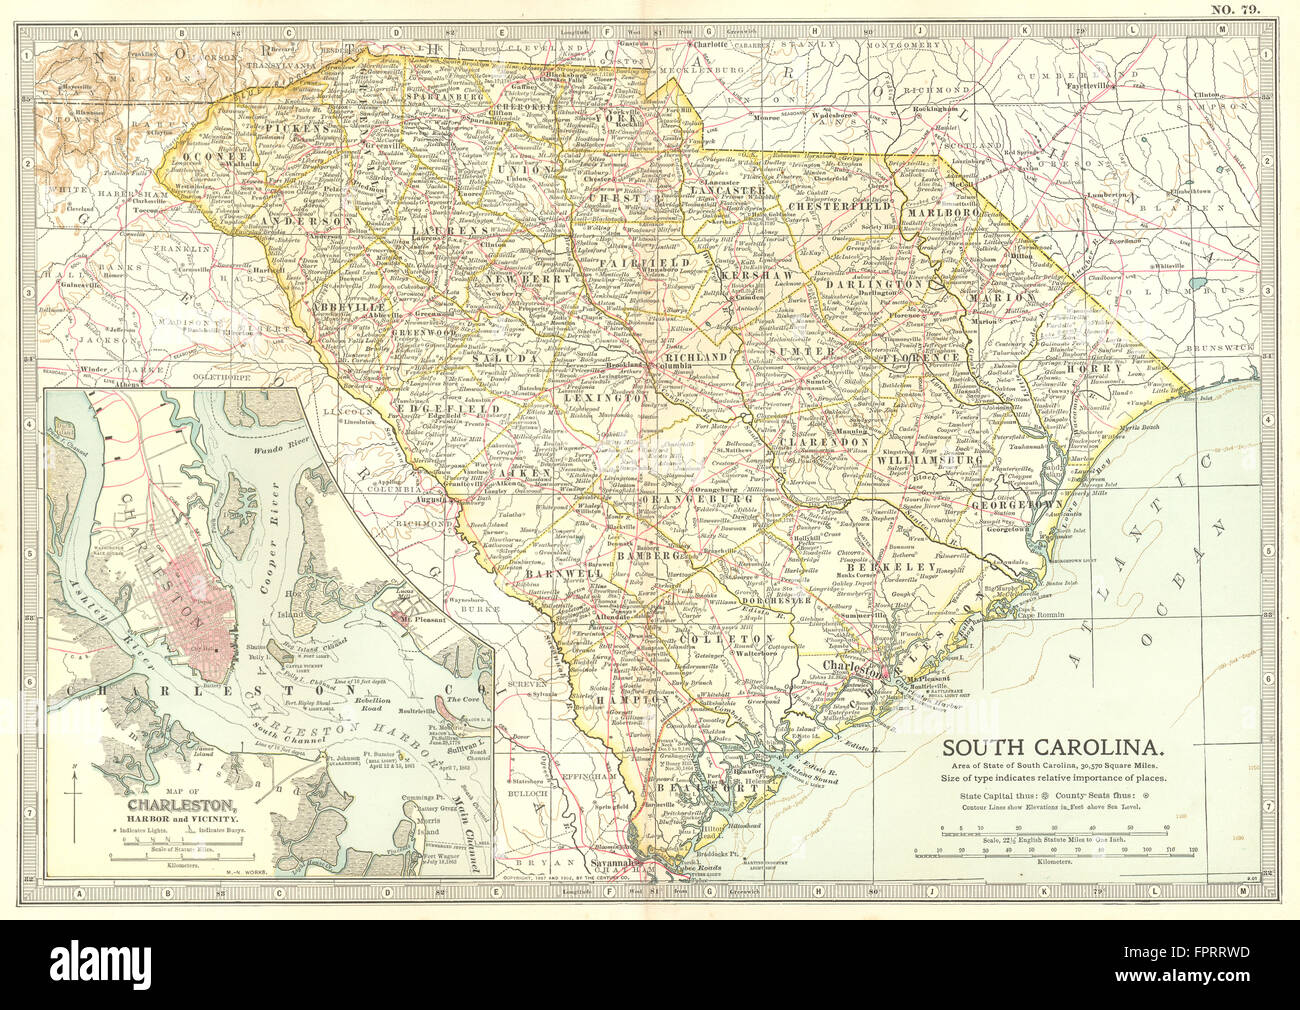 SOUTH CAROLINA: State map shows Civil War battlefields.Inset Stock ...